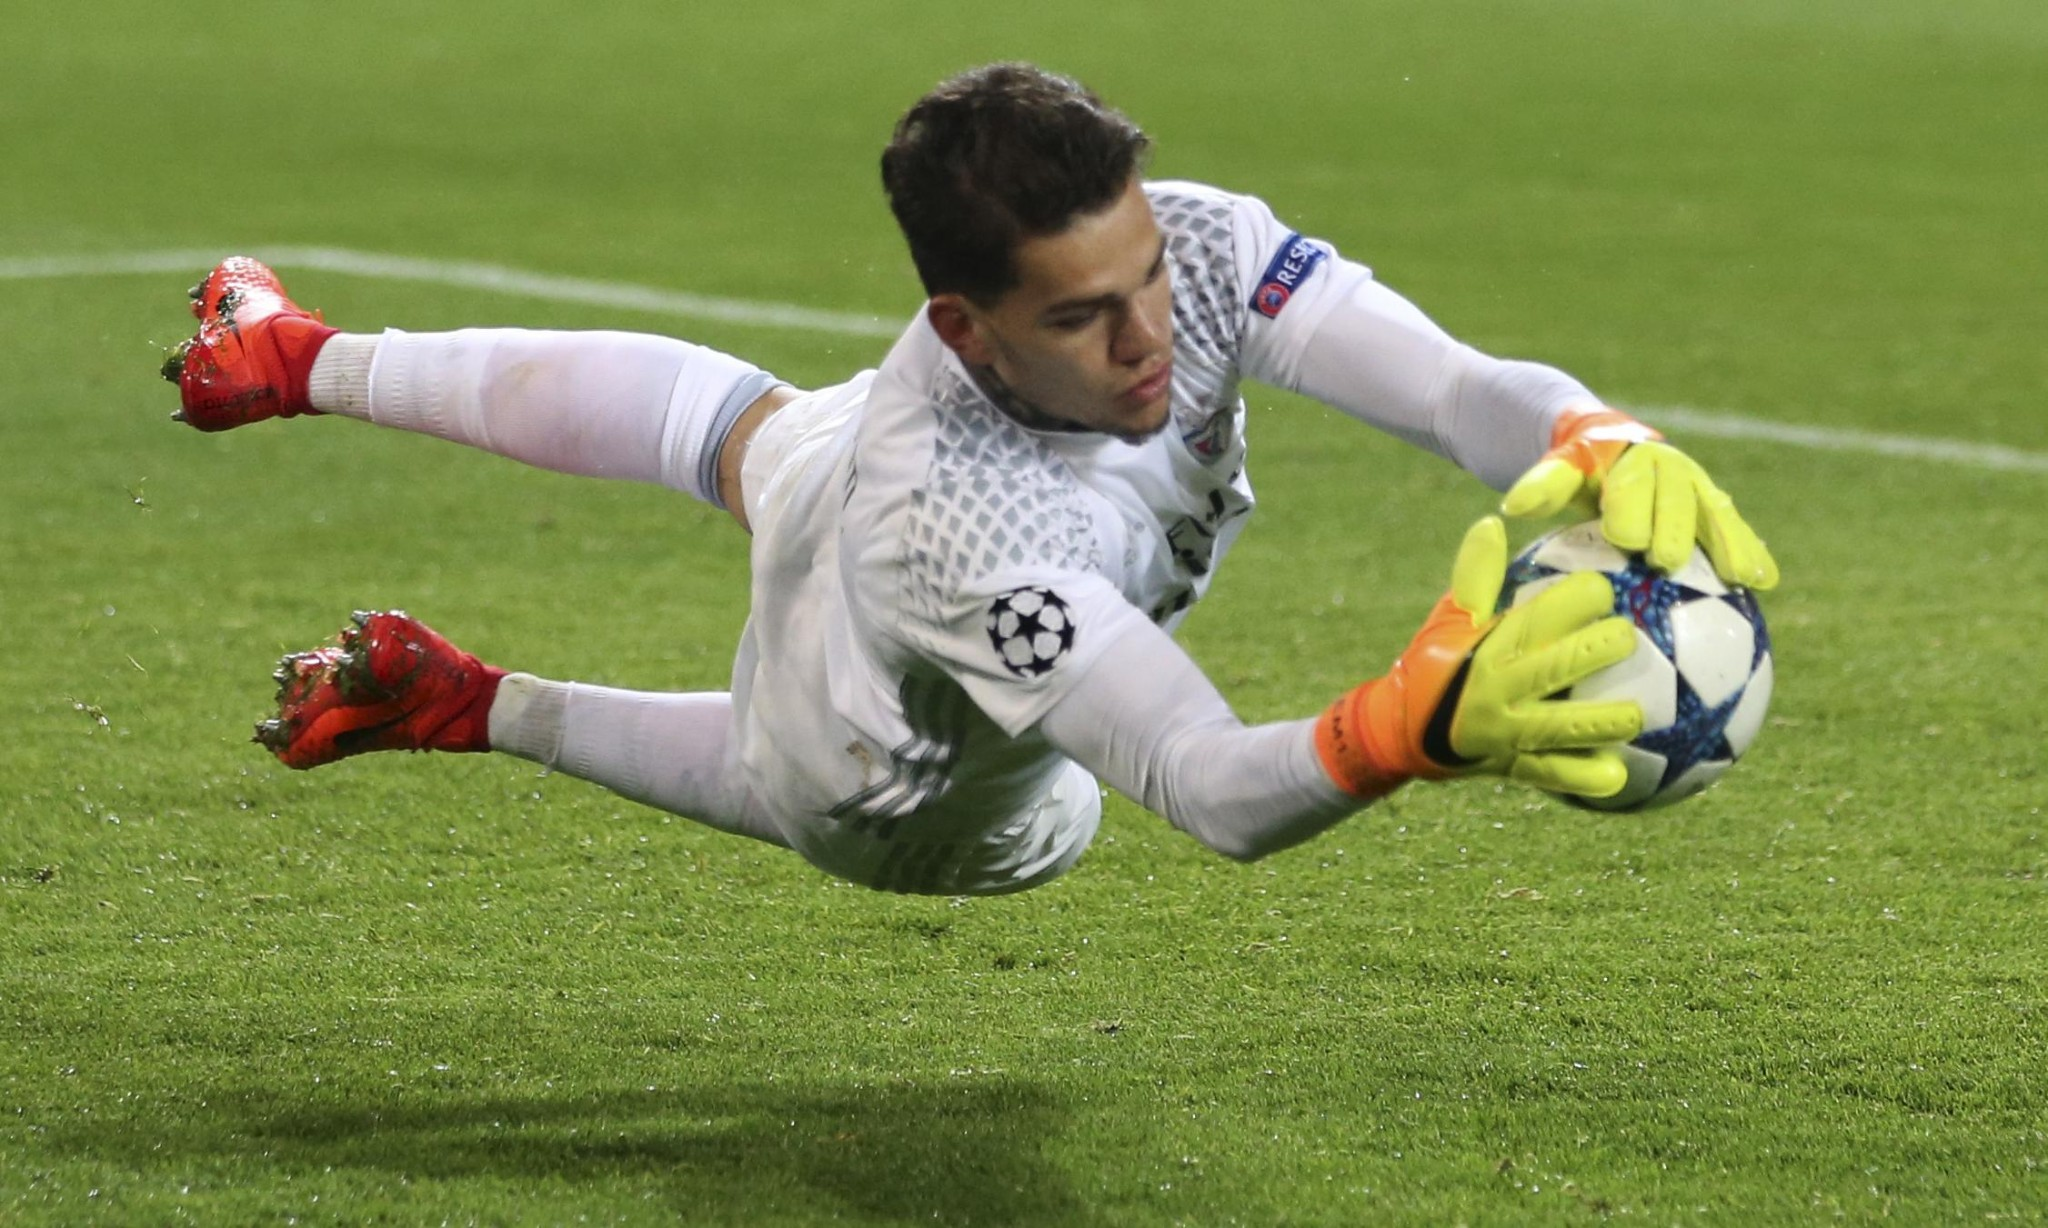 Manchester City set to pay world record £34.9m for goalkeeper Ederson